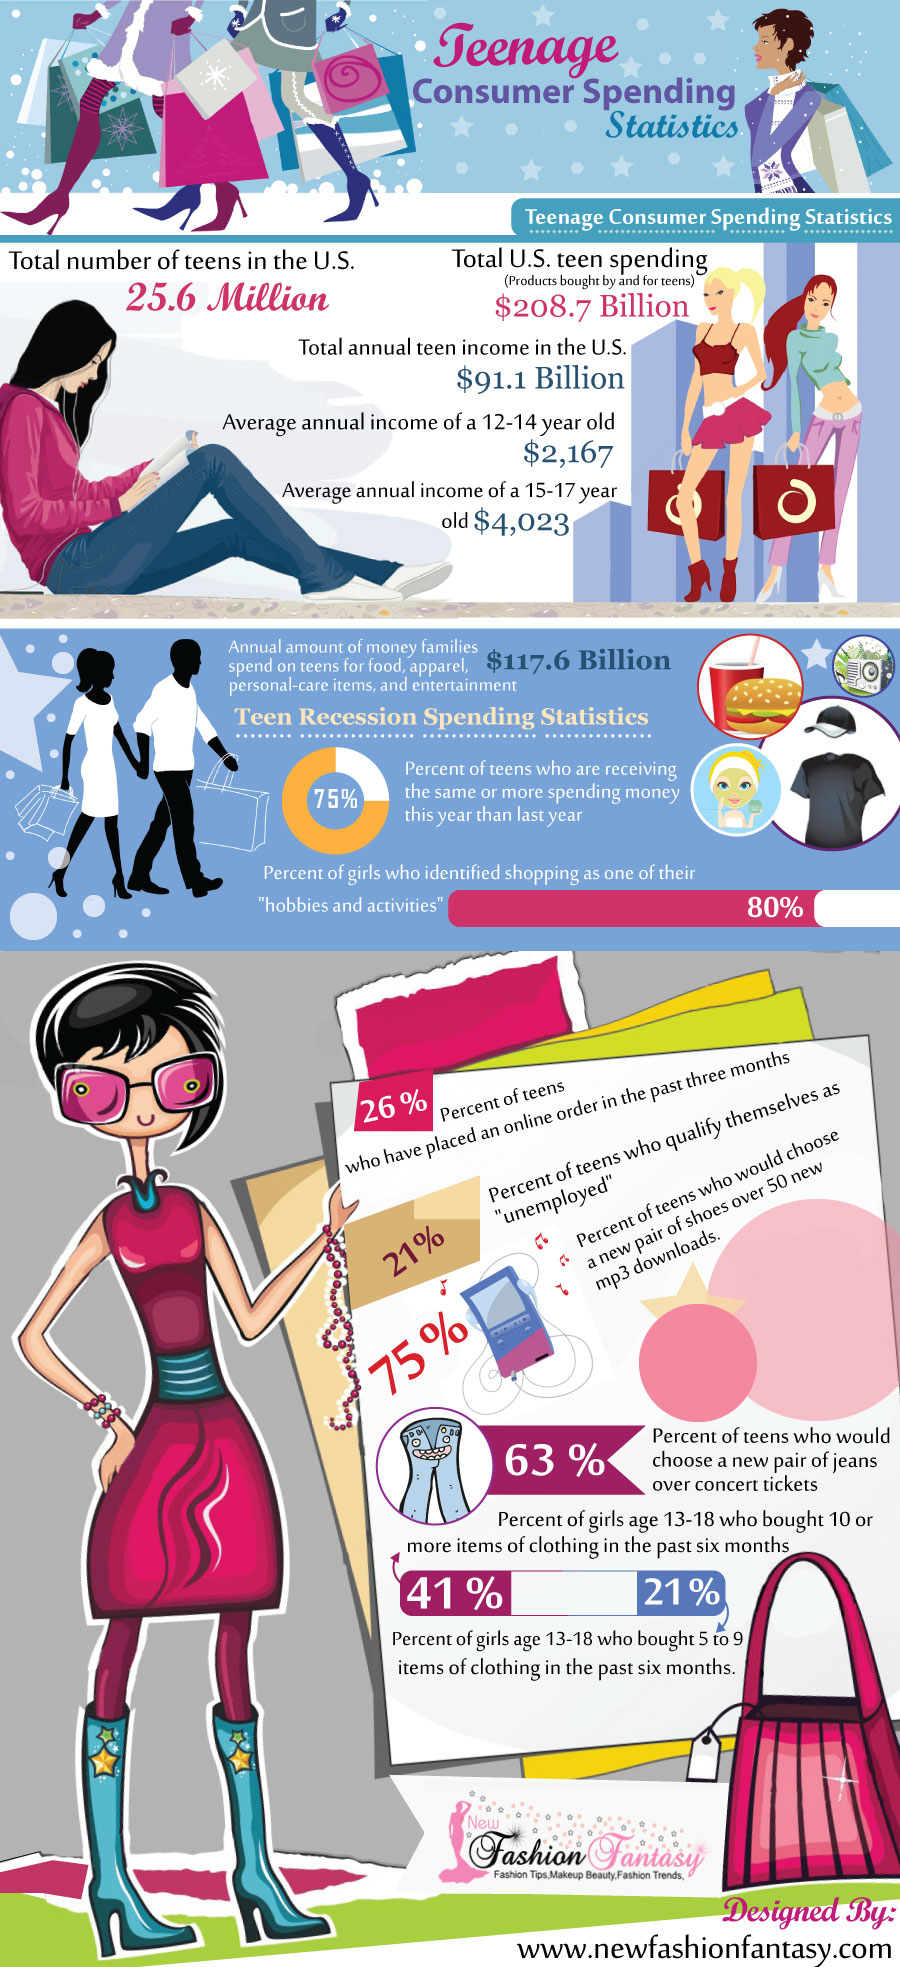 1Teen-Spending-Statistics-in-the-U.S.-InfoGraphic